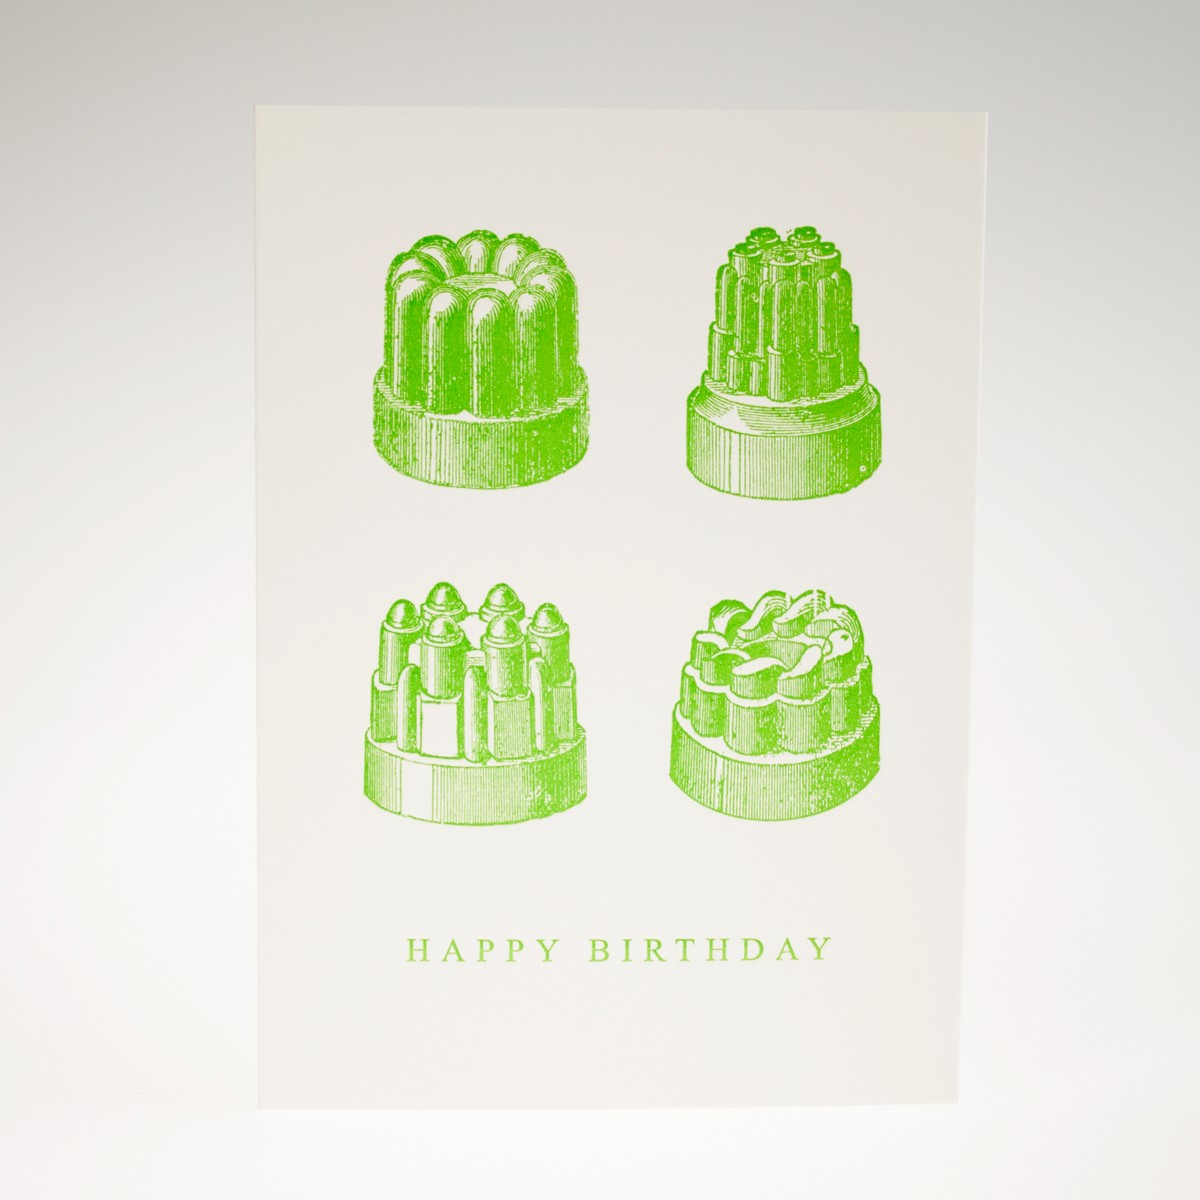 Photo of Jelly Moulds Letterpress Greeting Card